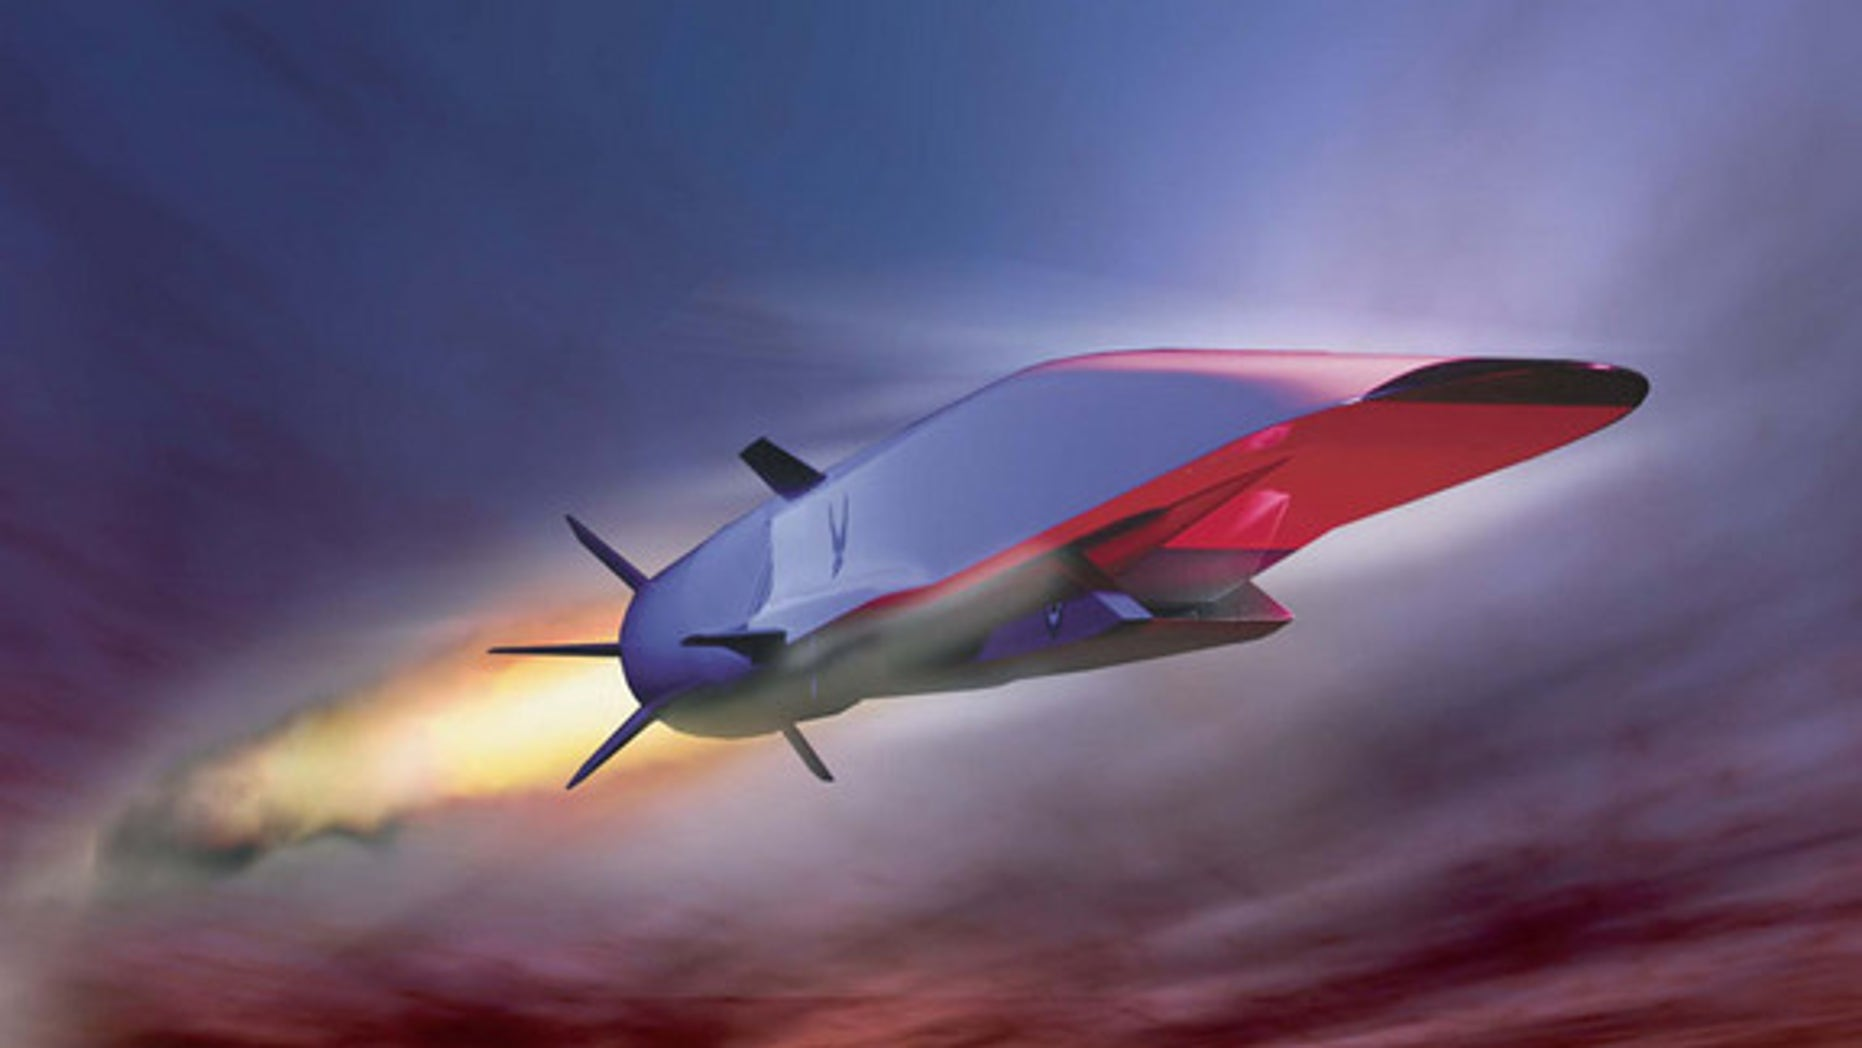 This Air Force illustration depicts the X-51A Waverider scramjet vehicle during hypersonic flight during its May 26, 2010 test. Powered by a Pratt & Whitney Rocketdyne SJY61 scramjet engine, it is designed to ride on its own shockwave and accel